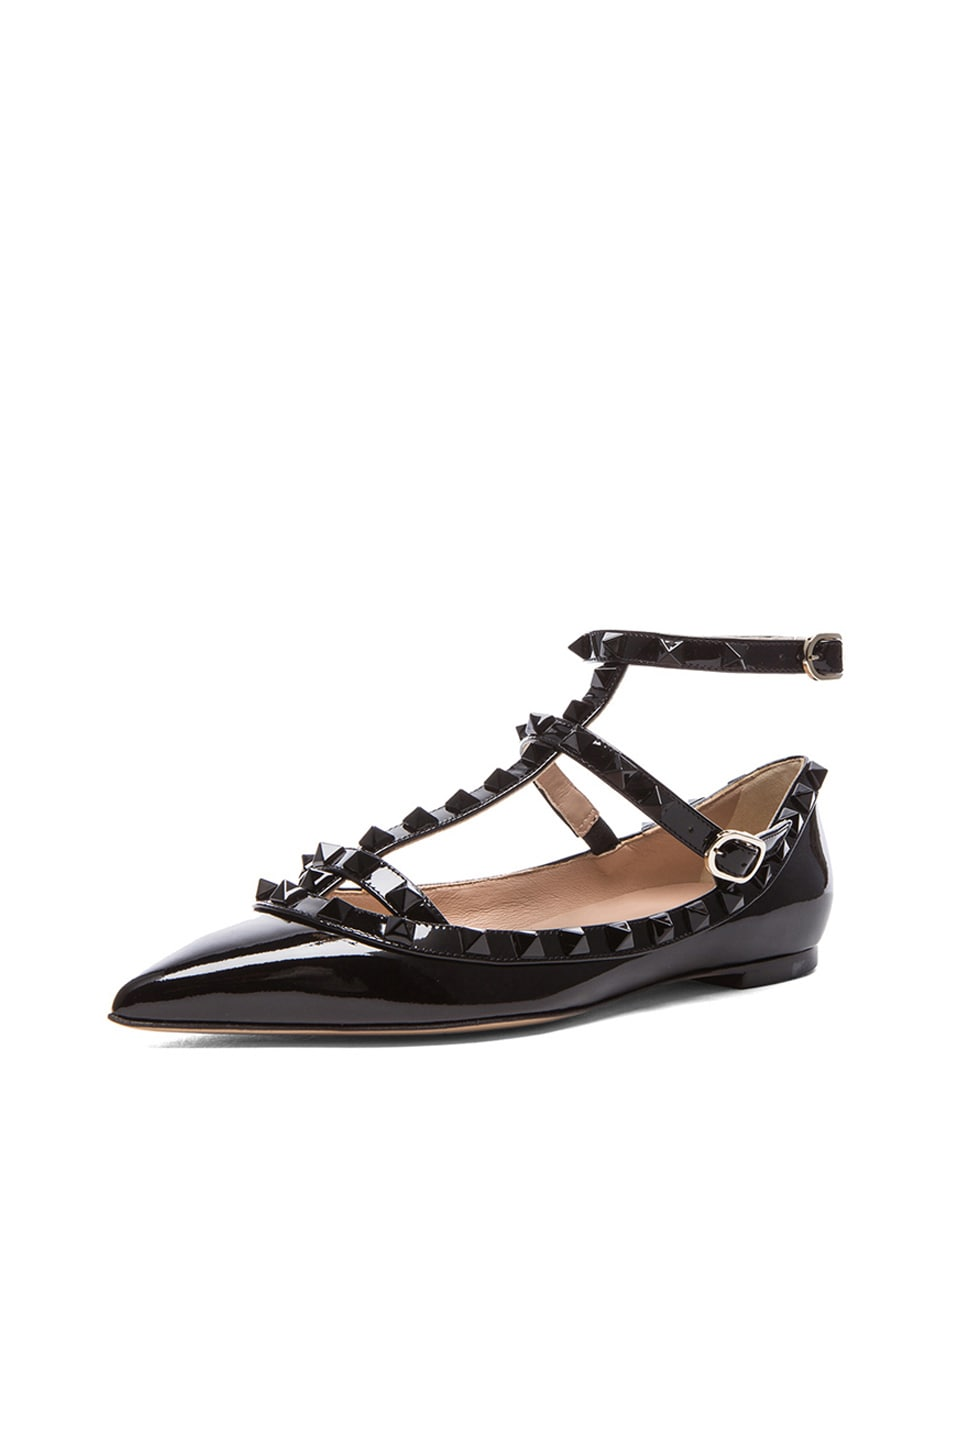 Image 2 of Valentino Rockstud Punkouture Patent Ballerina Flats in Black